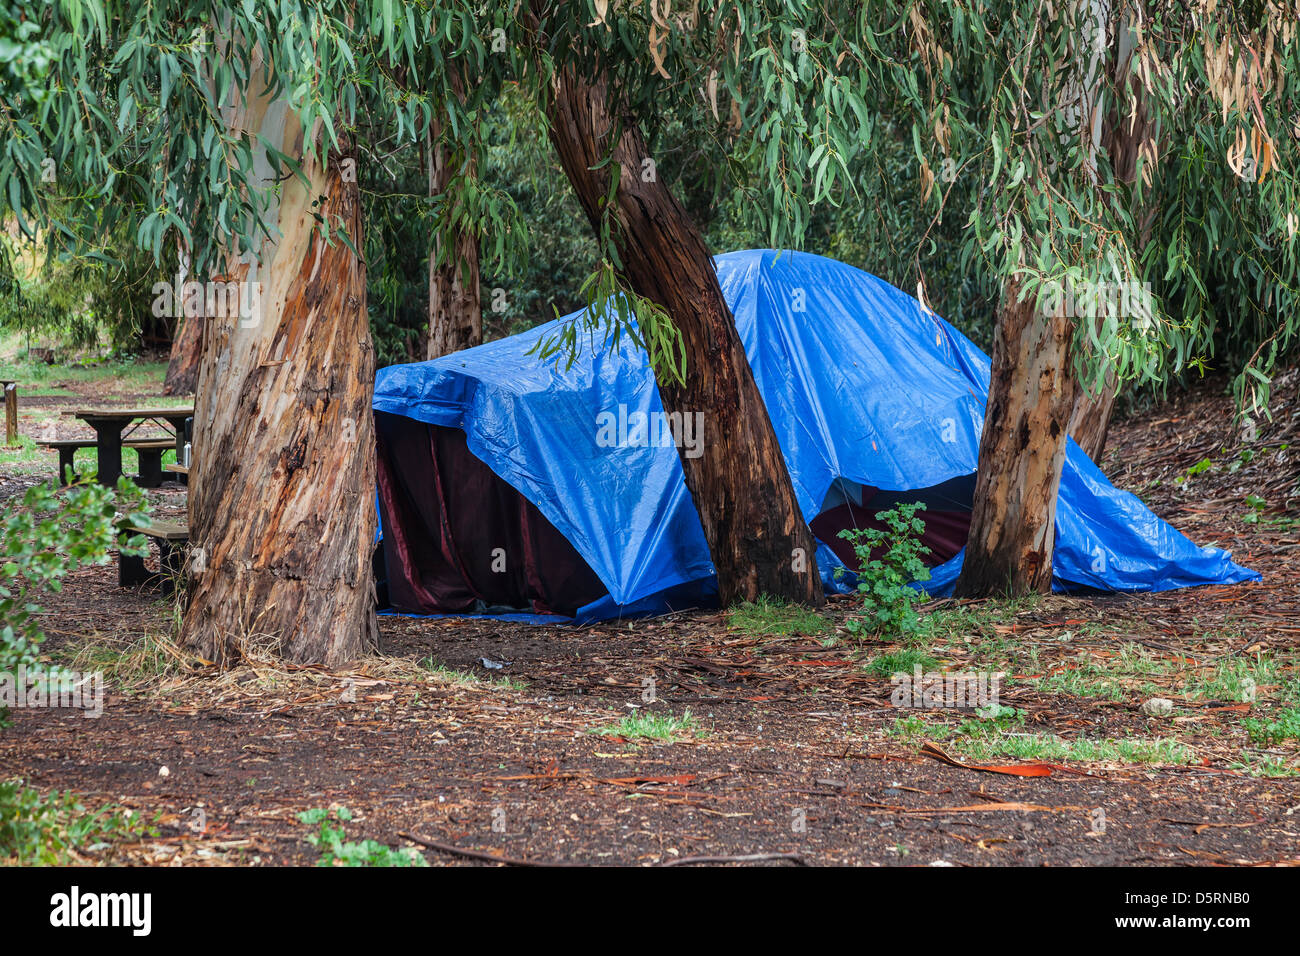 Blue tarp covering tent at Scorpion Ranch c&ground after a heavy spring rain Santa Cruz Island Channel Islands National Park & Blue tarp covering tent at Scorpion Ranch campground after a heavy ...